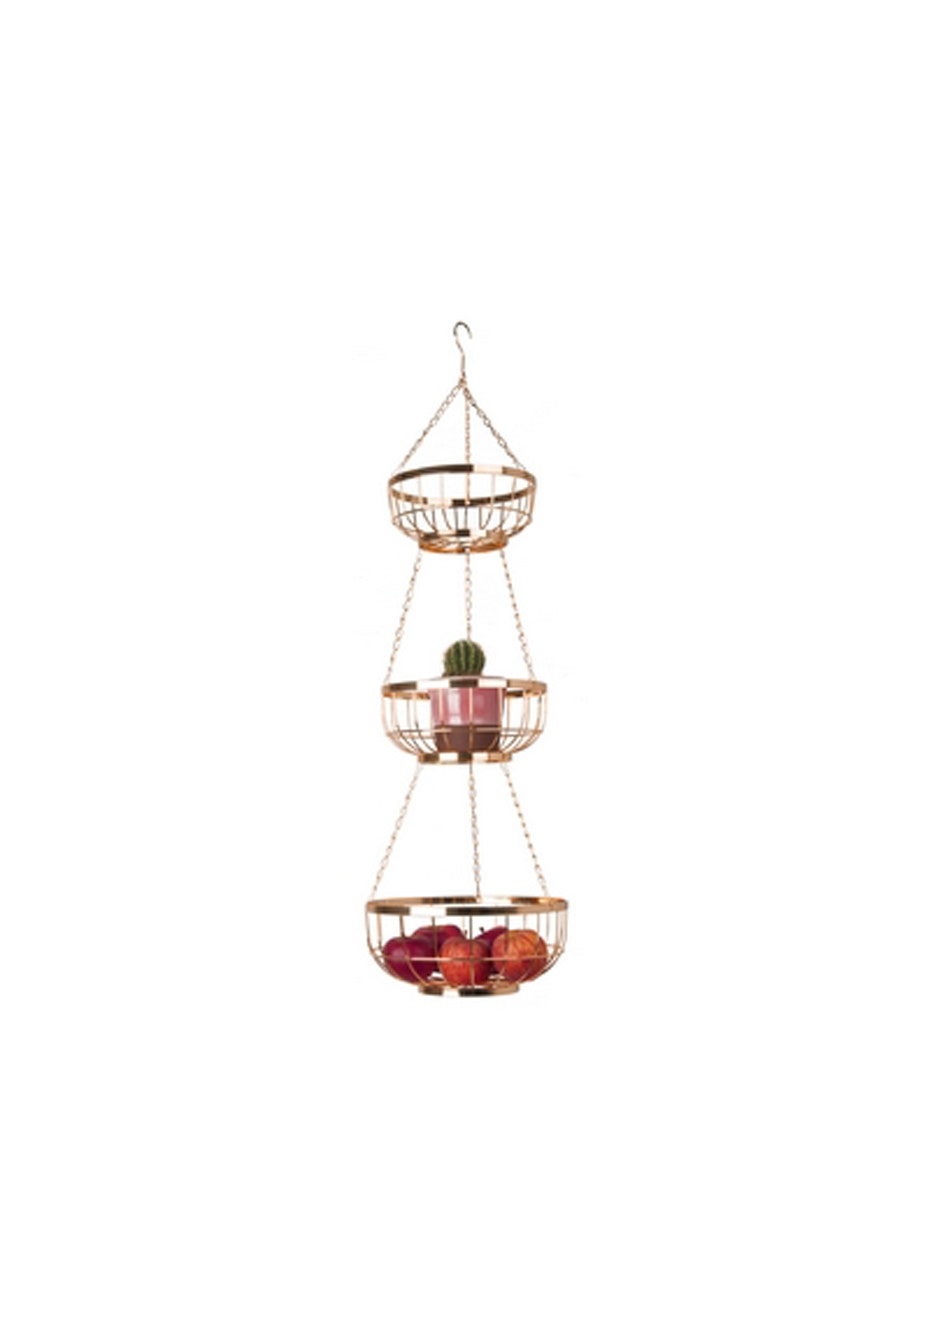 Pt Home - Set of 3 Hanging Baskets - Copper